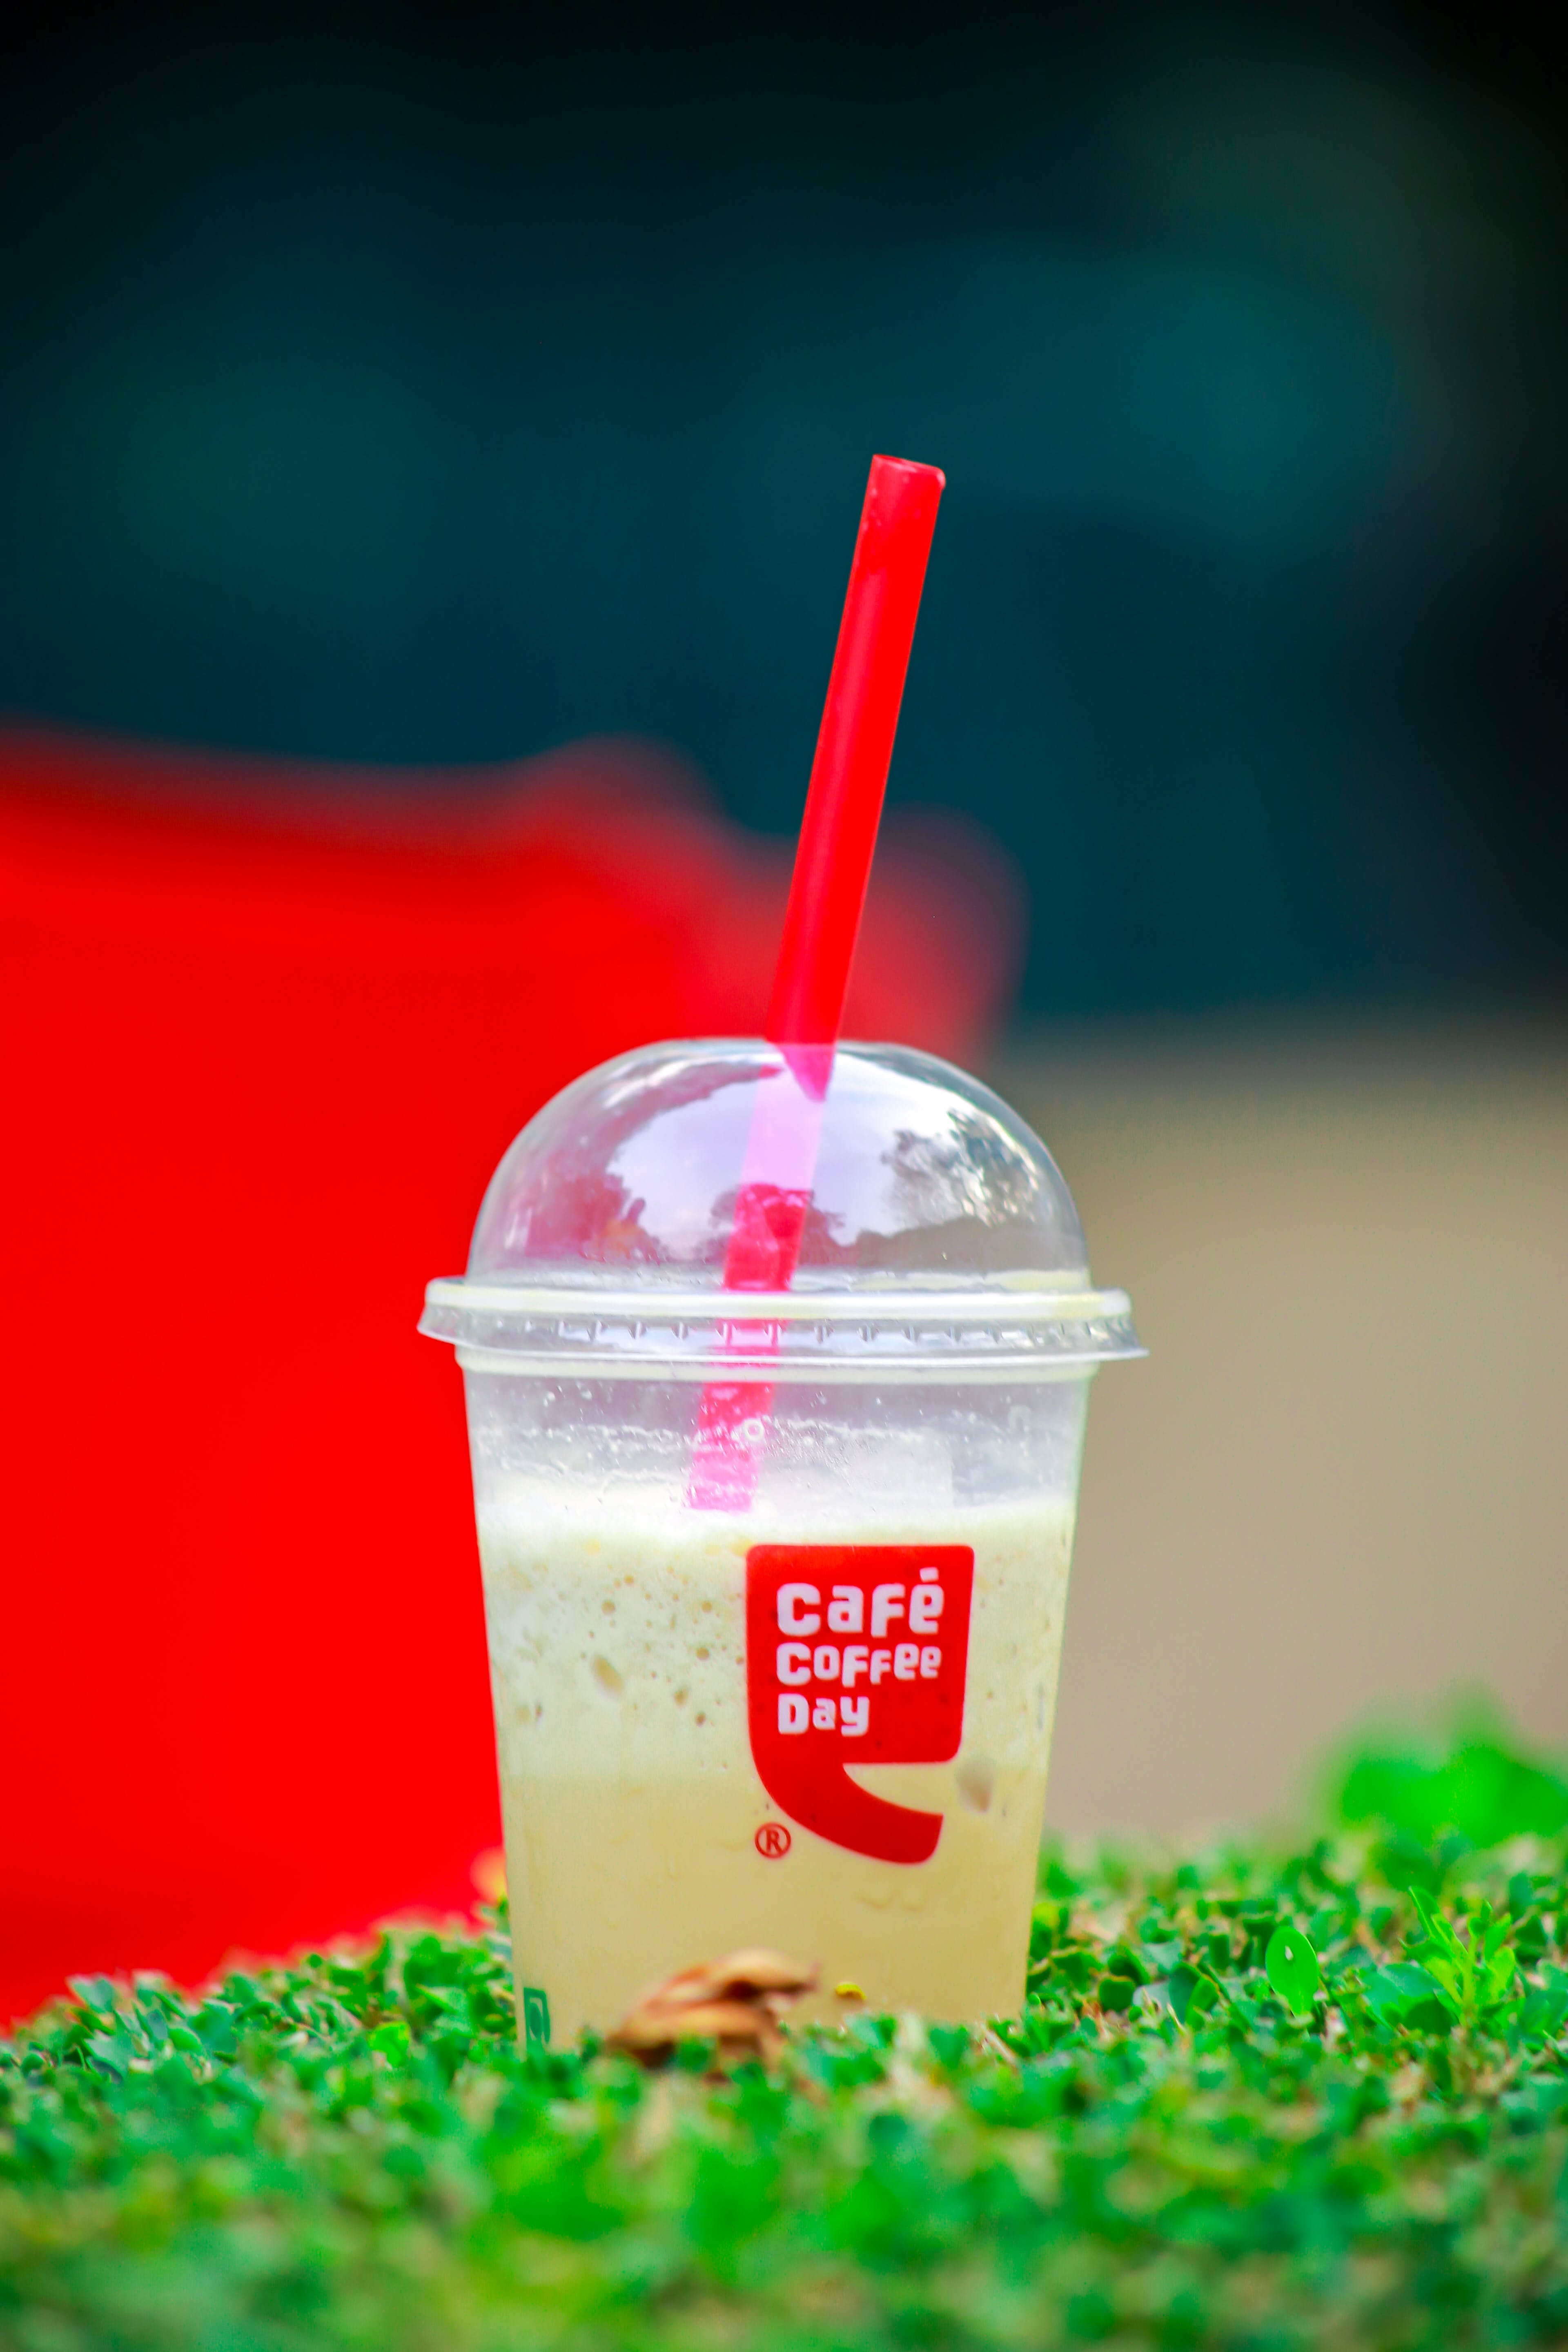 Close-Up Photography of Plastic Cup with Dome Lid